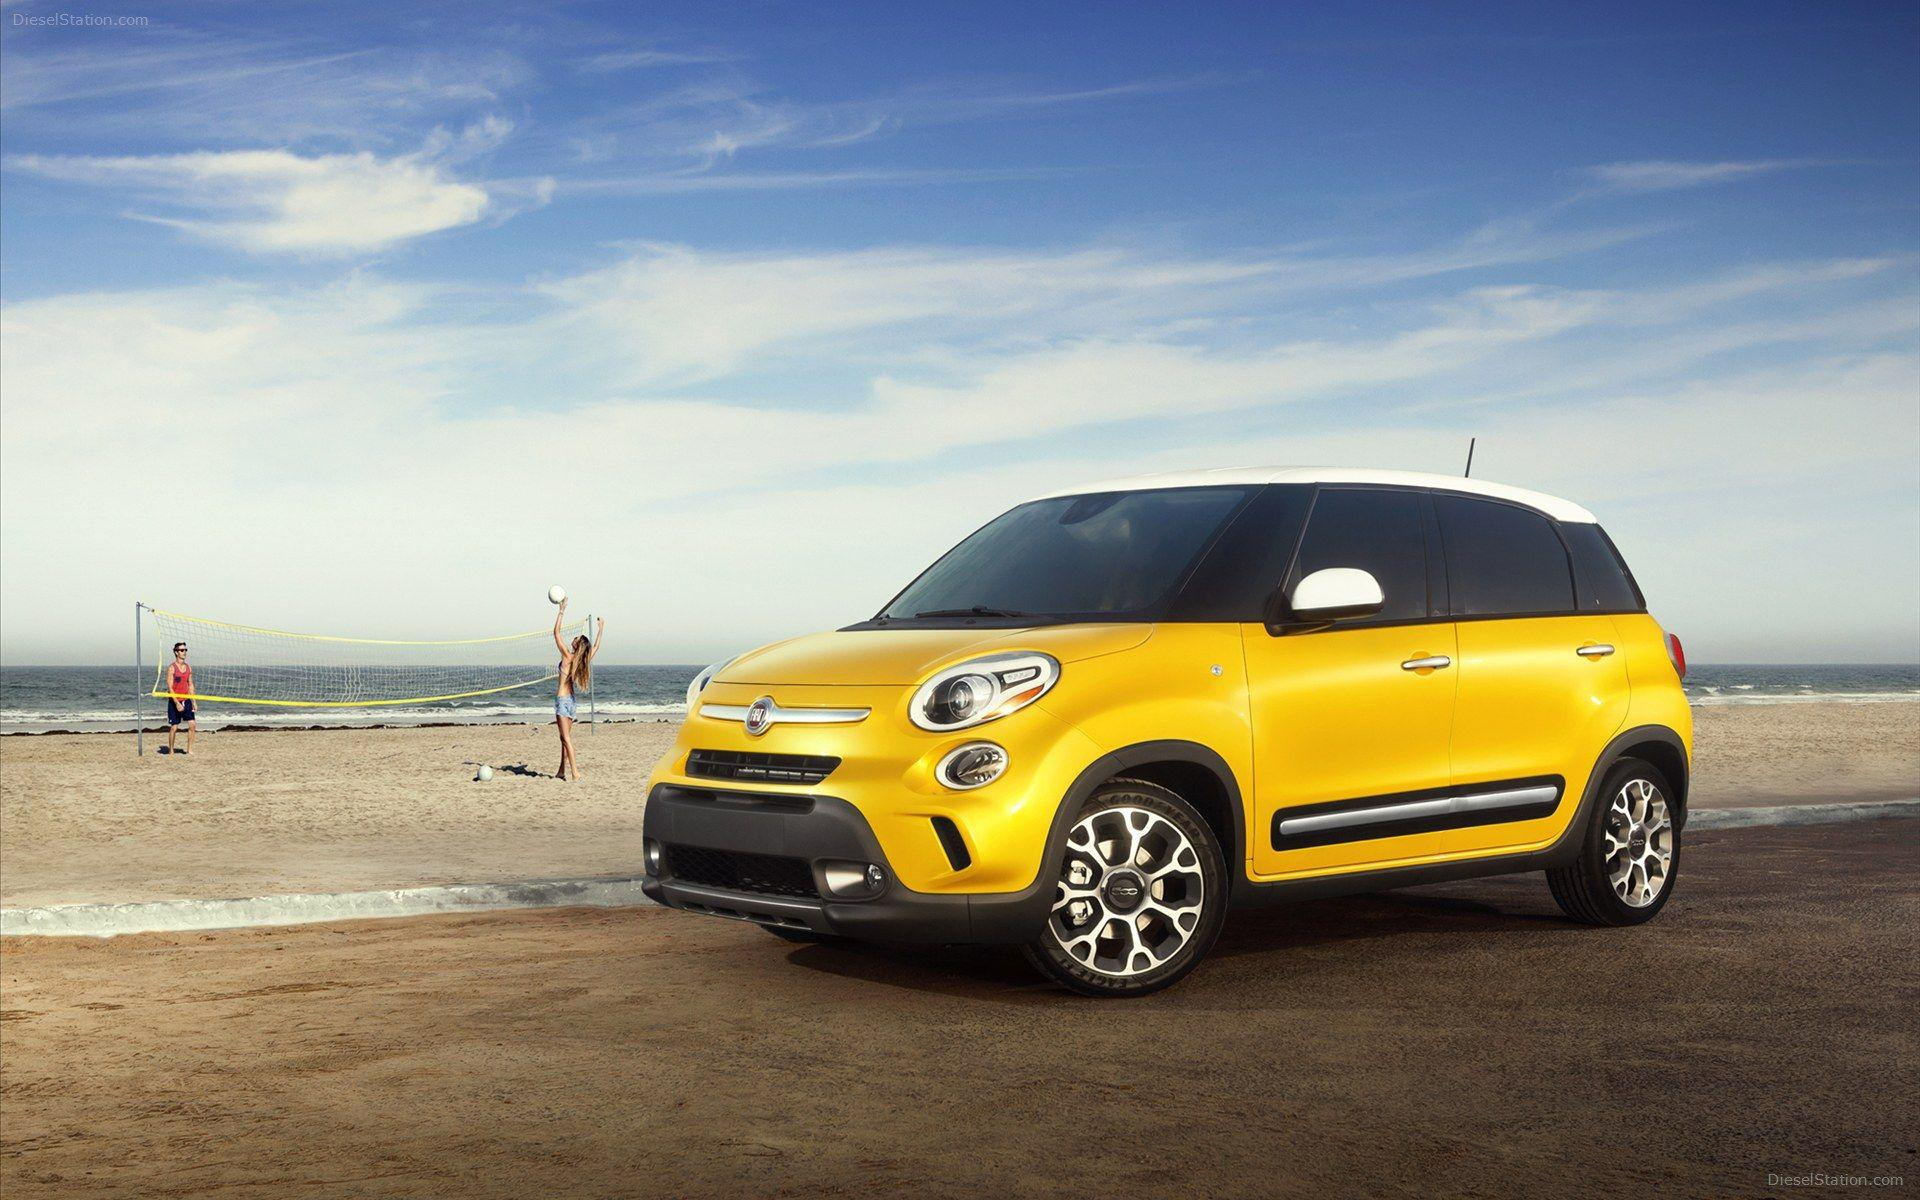 Fiat 500l Wallpaper HD Photos, Wallpapers and other Images - Wall ...